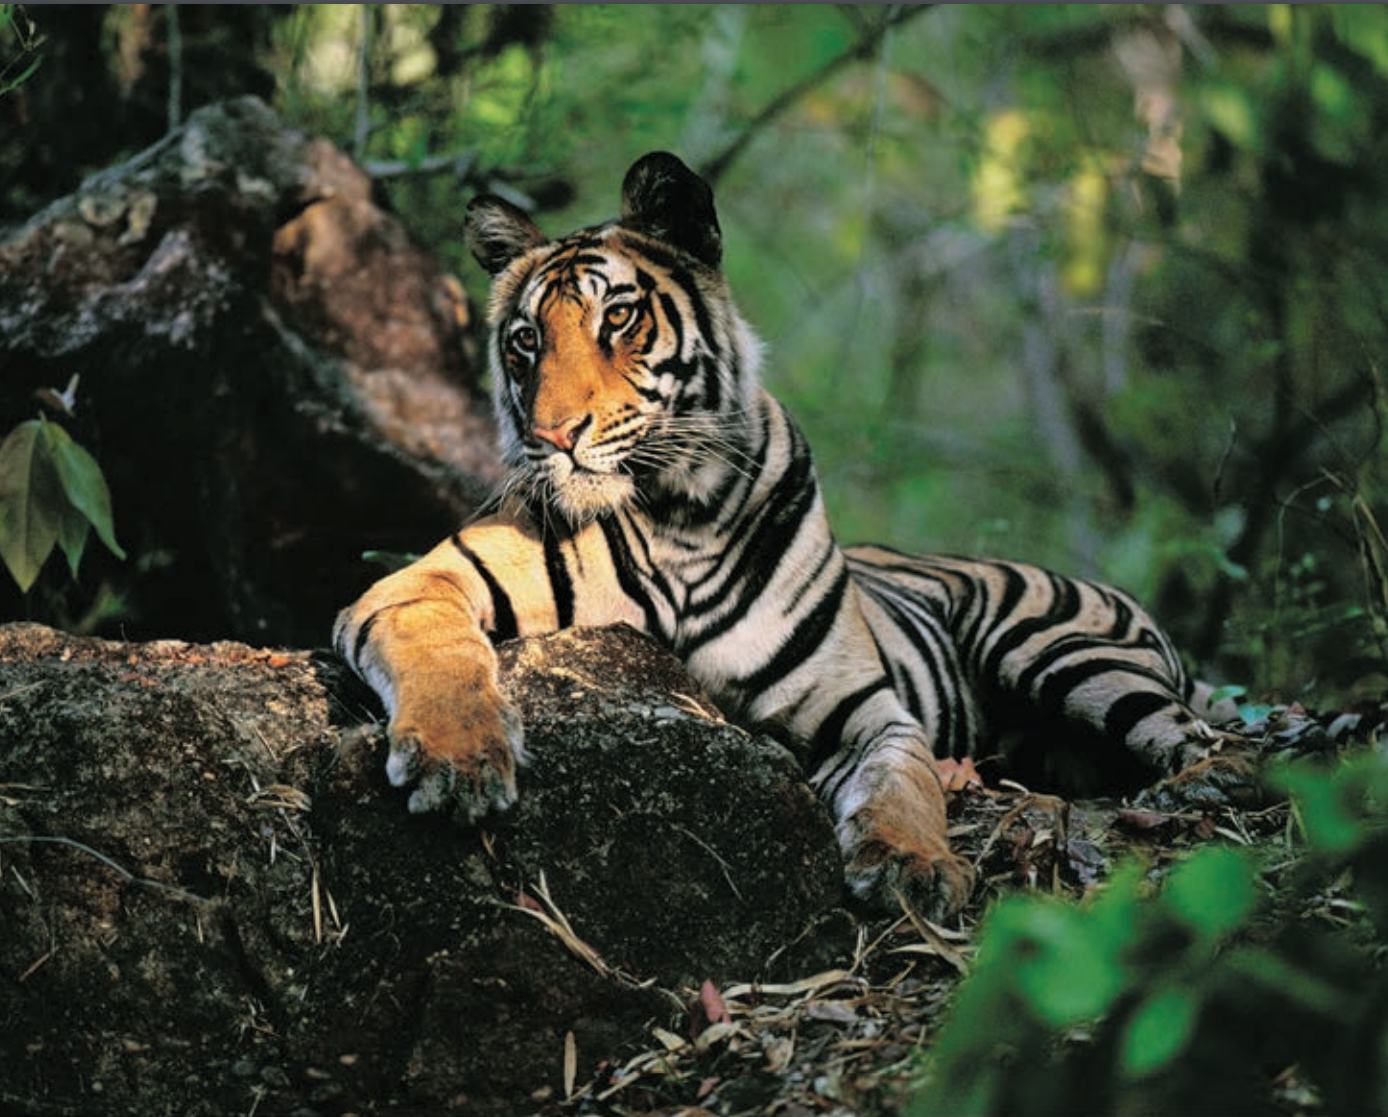 Light In The Forest (Bengal Tiger) 1998, Framed Archival Print, 50x70 by Thomas D. Mangelsen